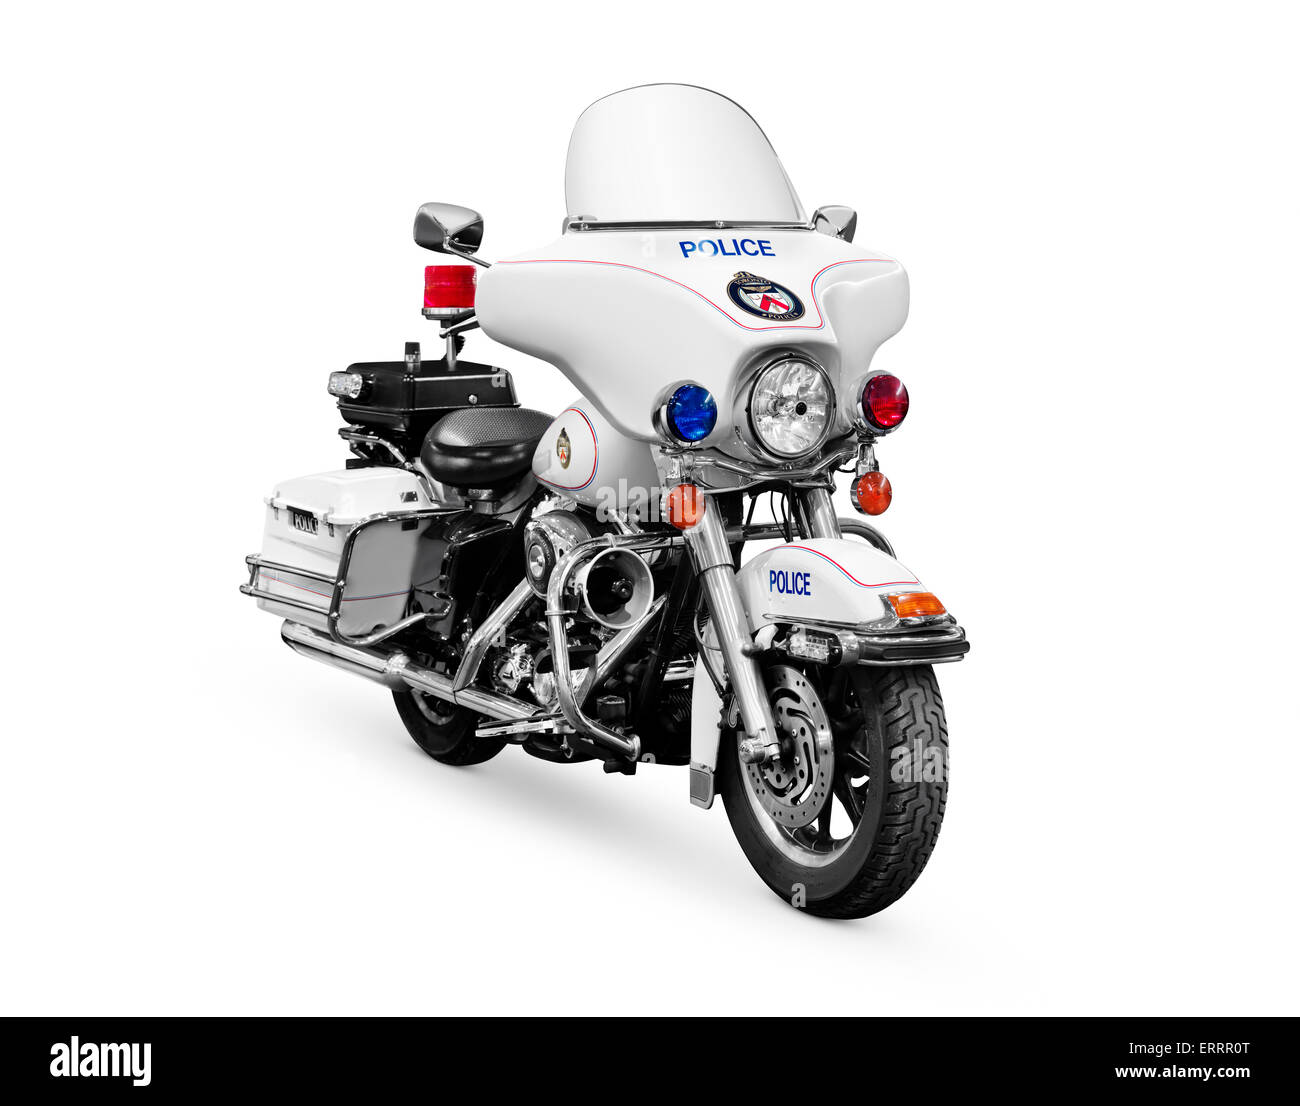 Police Motorcycle Stock Photos Amp Police Motorcycle Stock